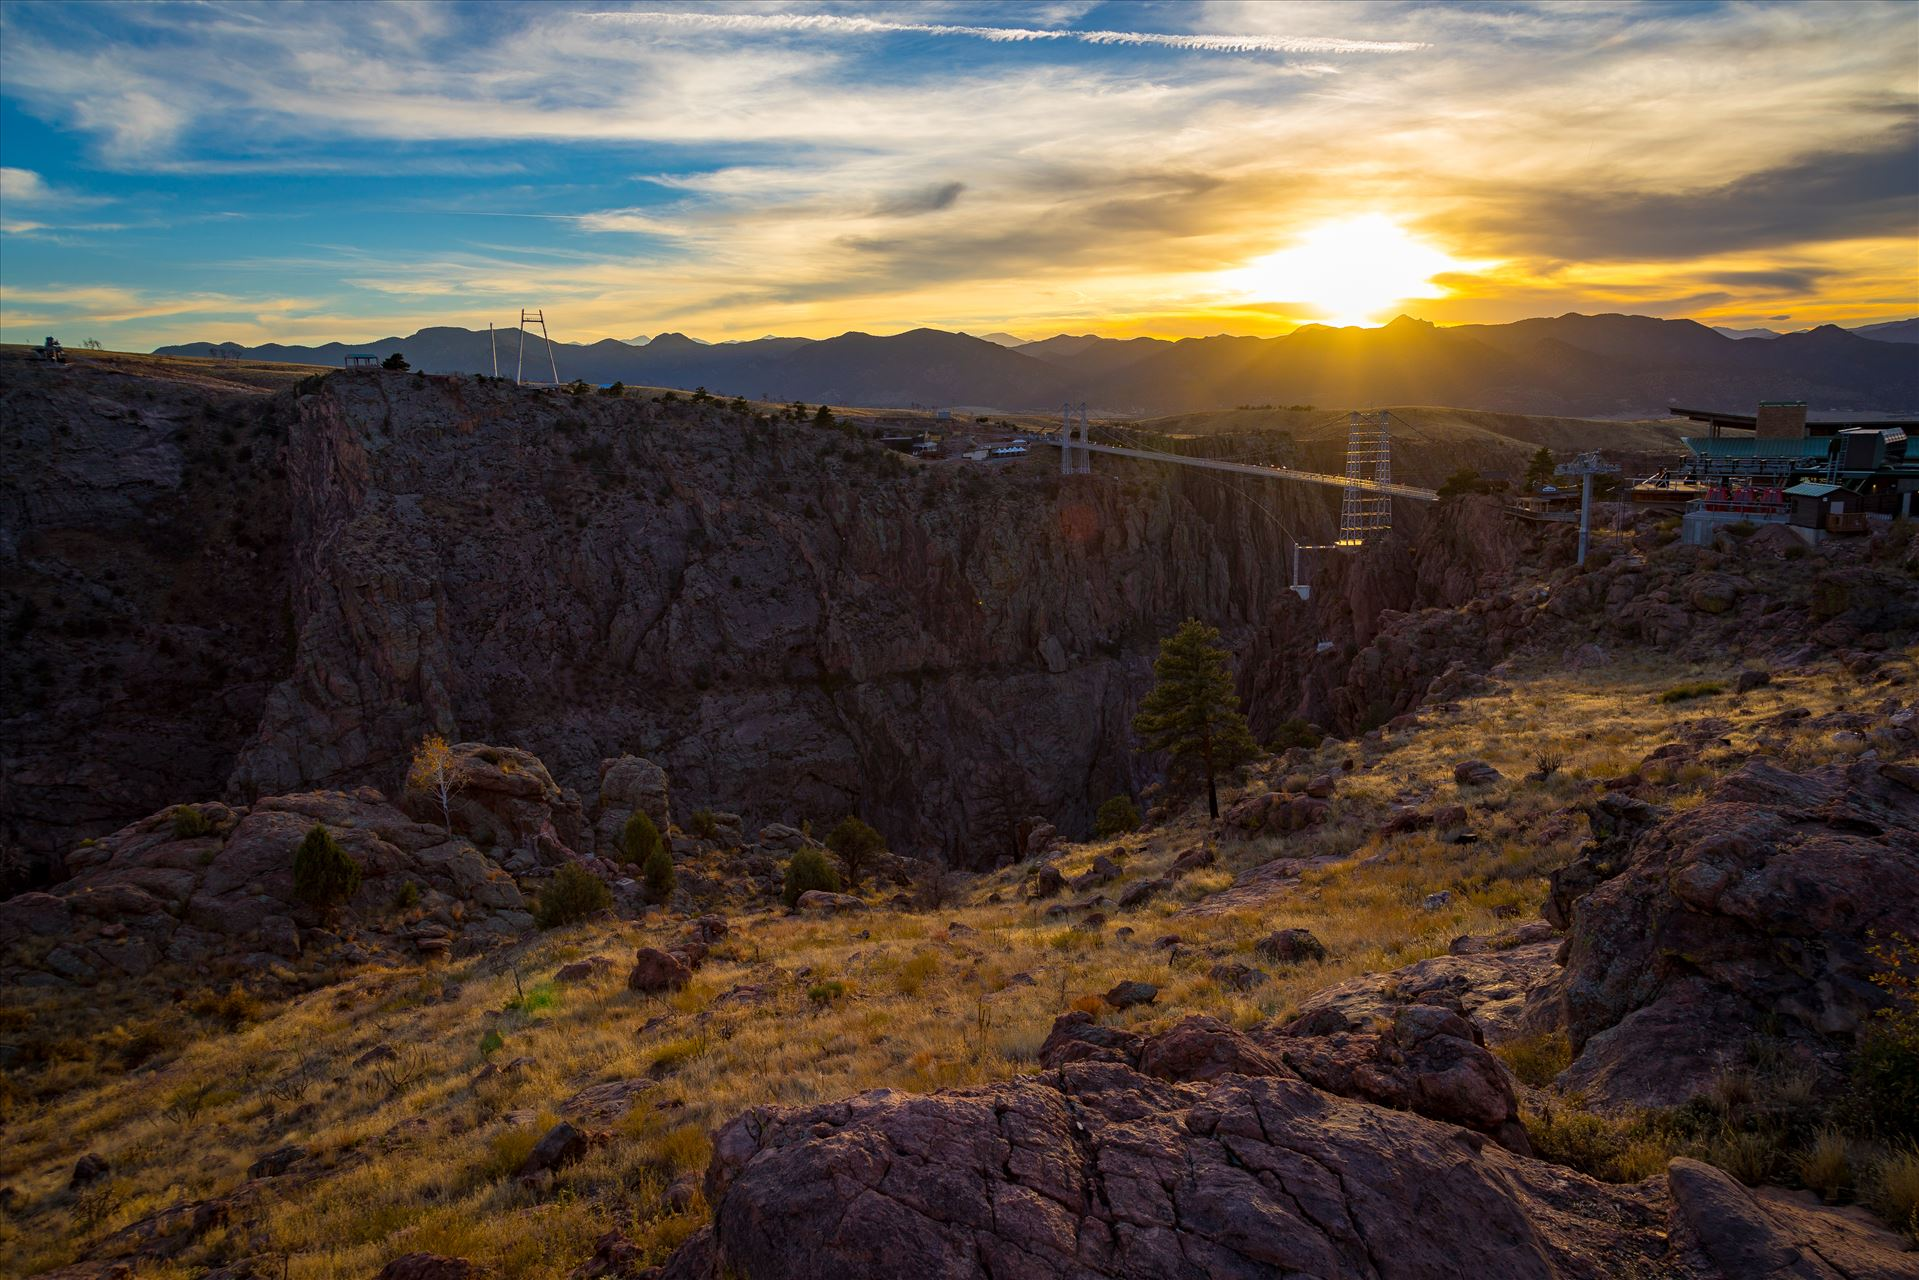 Royal Gorge No 3 - The sun sets over the bridge at the Royal Gorge, near Canon City, Colorado. The bridge is the highest bridge in North America, at almost 1,000 feet over the Arkansas River. by D Scott Smith